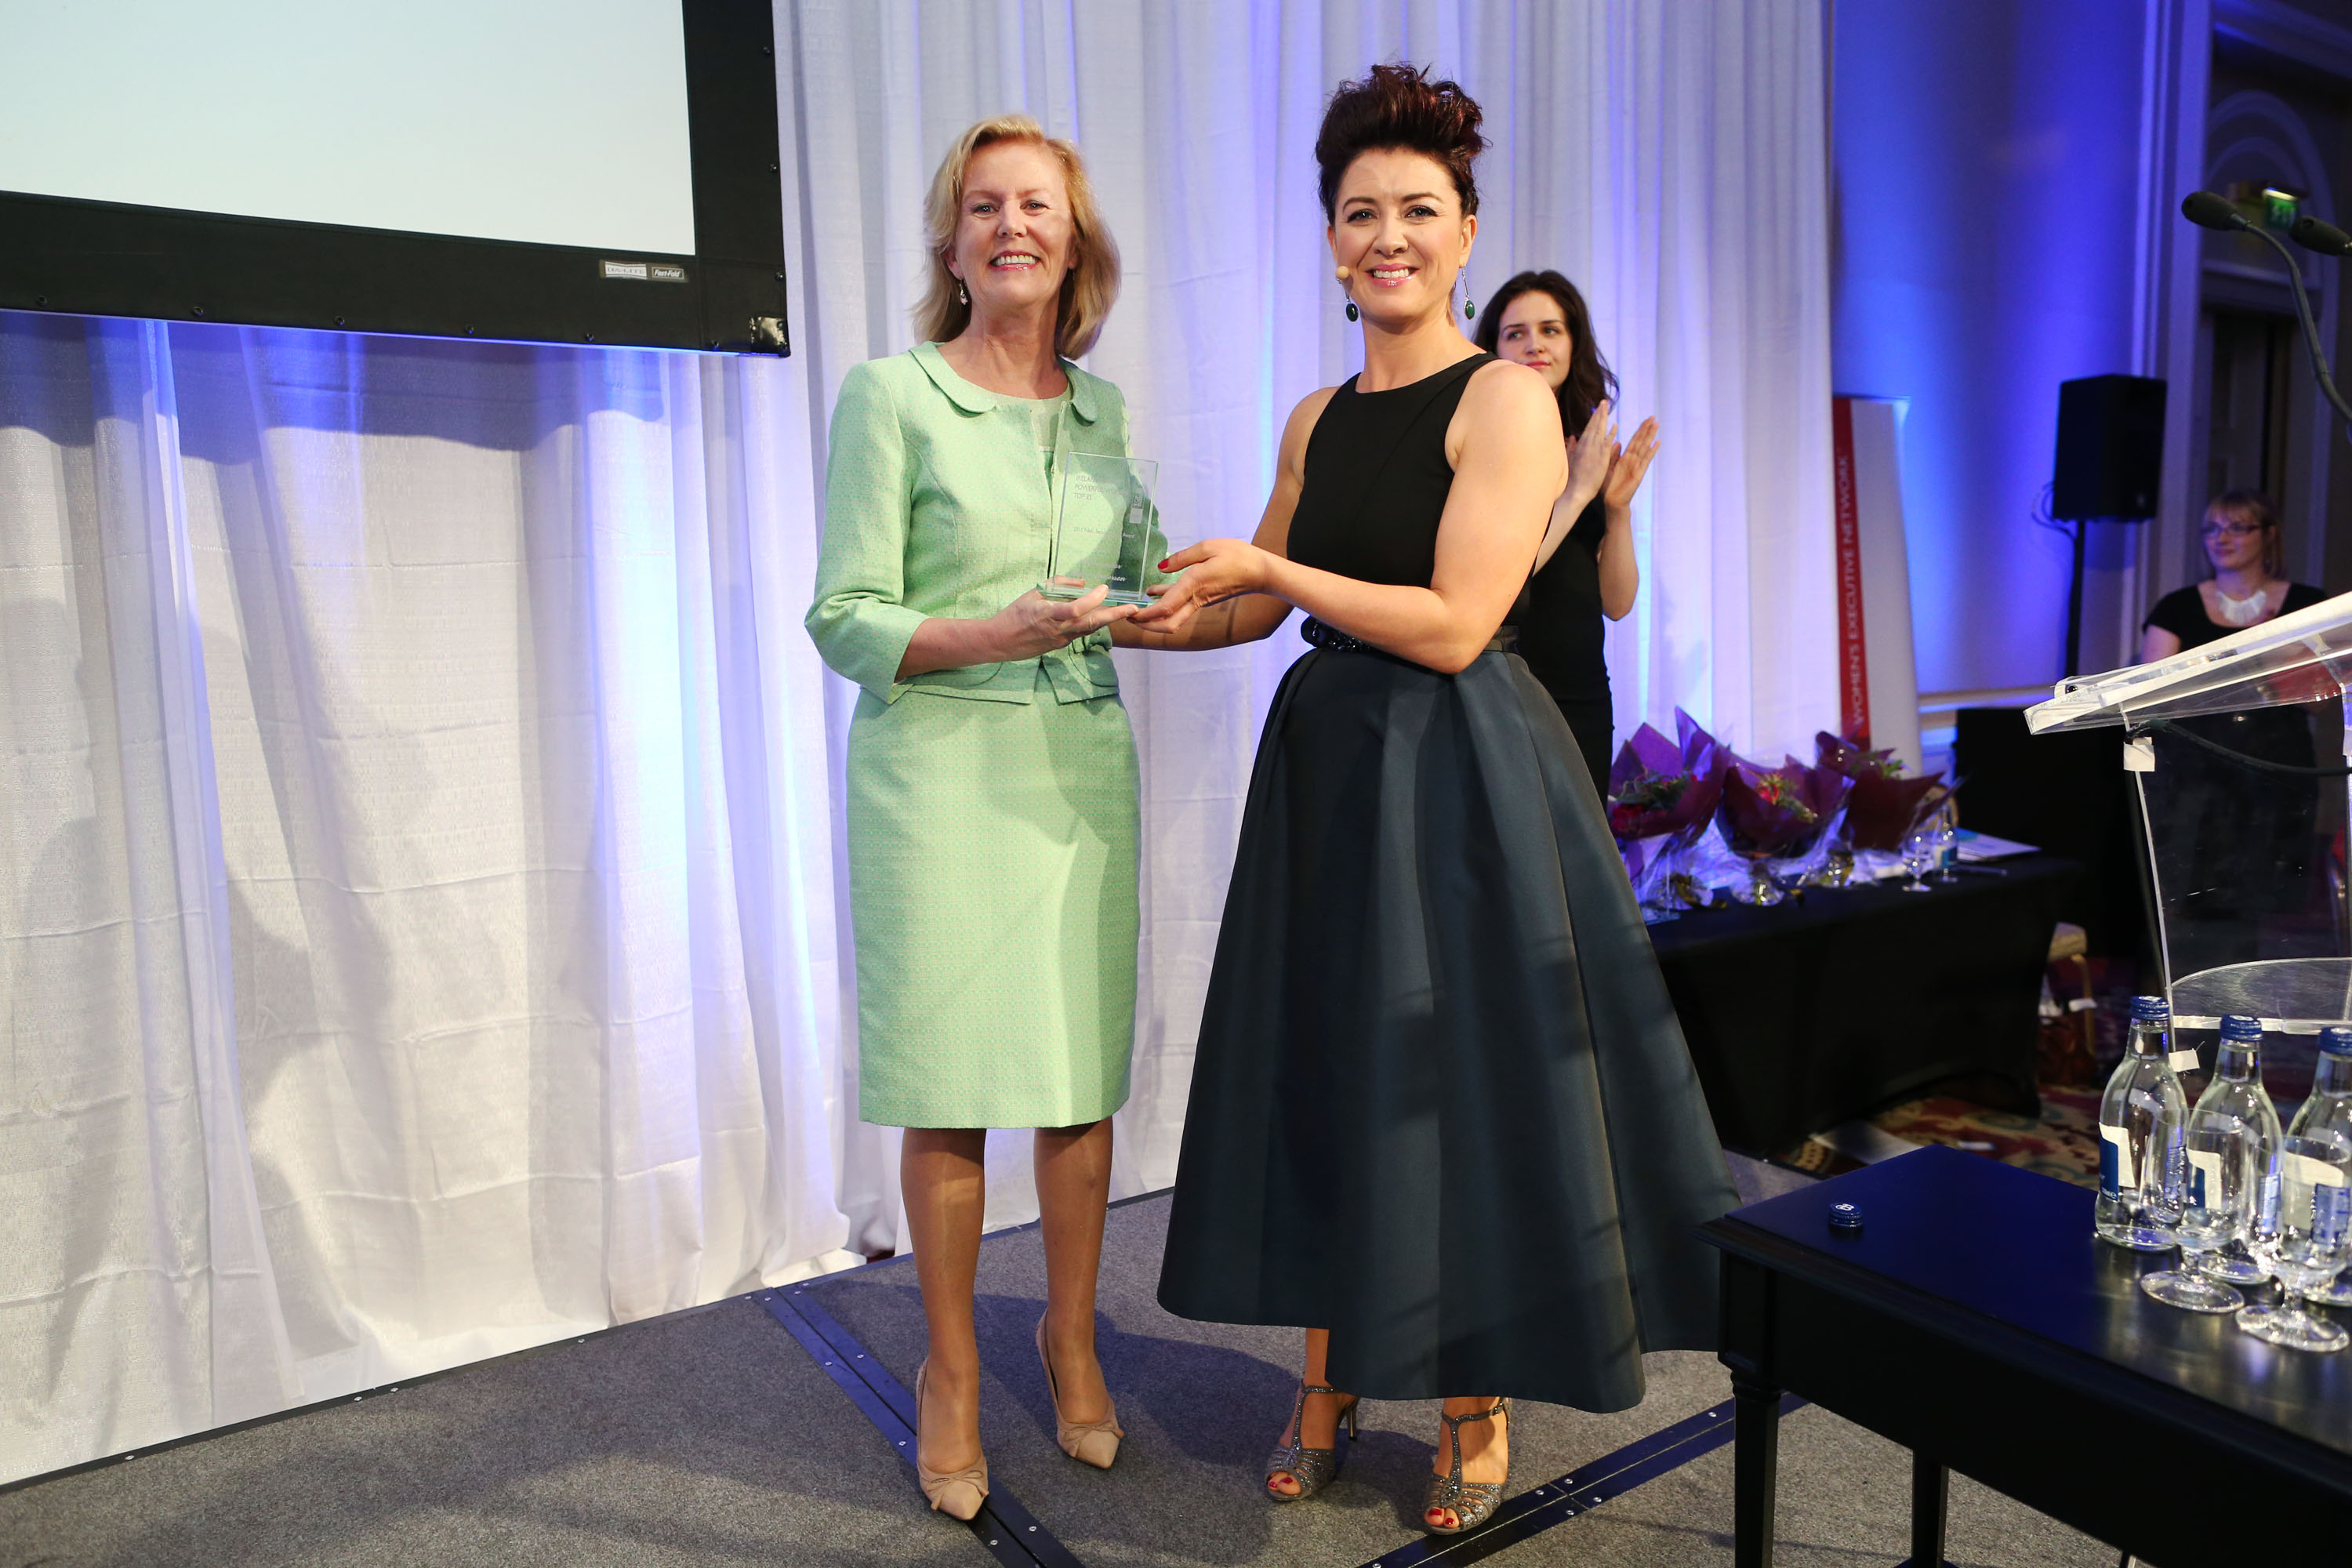 Anne Anderson with Roisin O'Hara, broadcast Journalist. Click to enlarge.